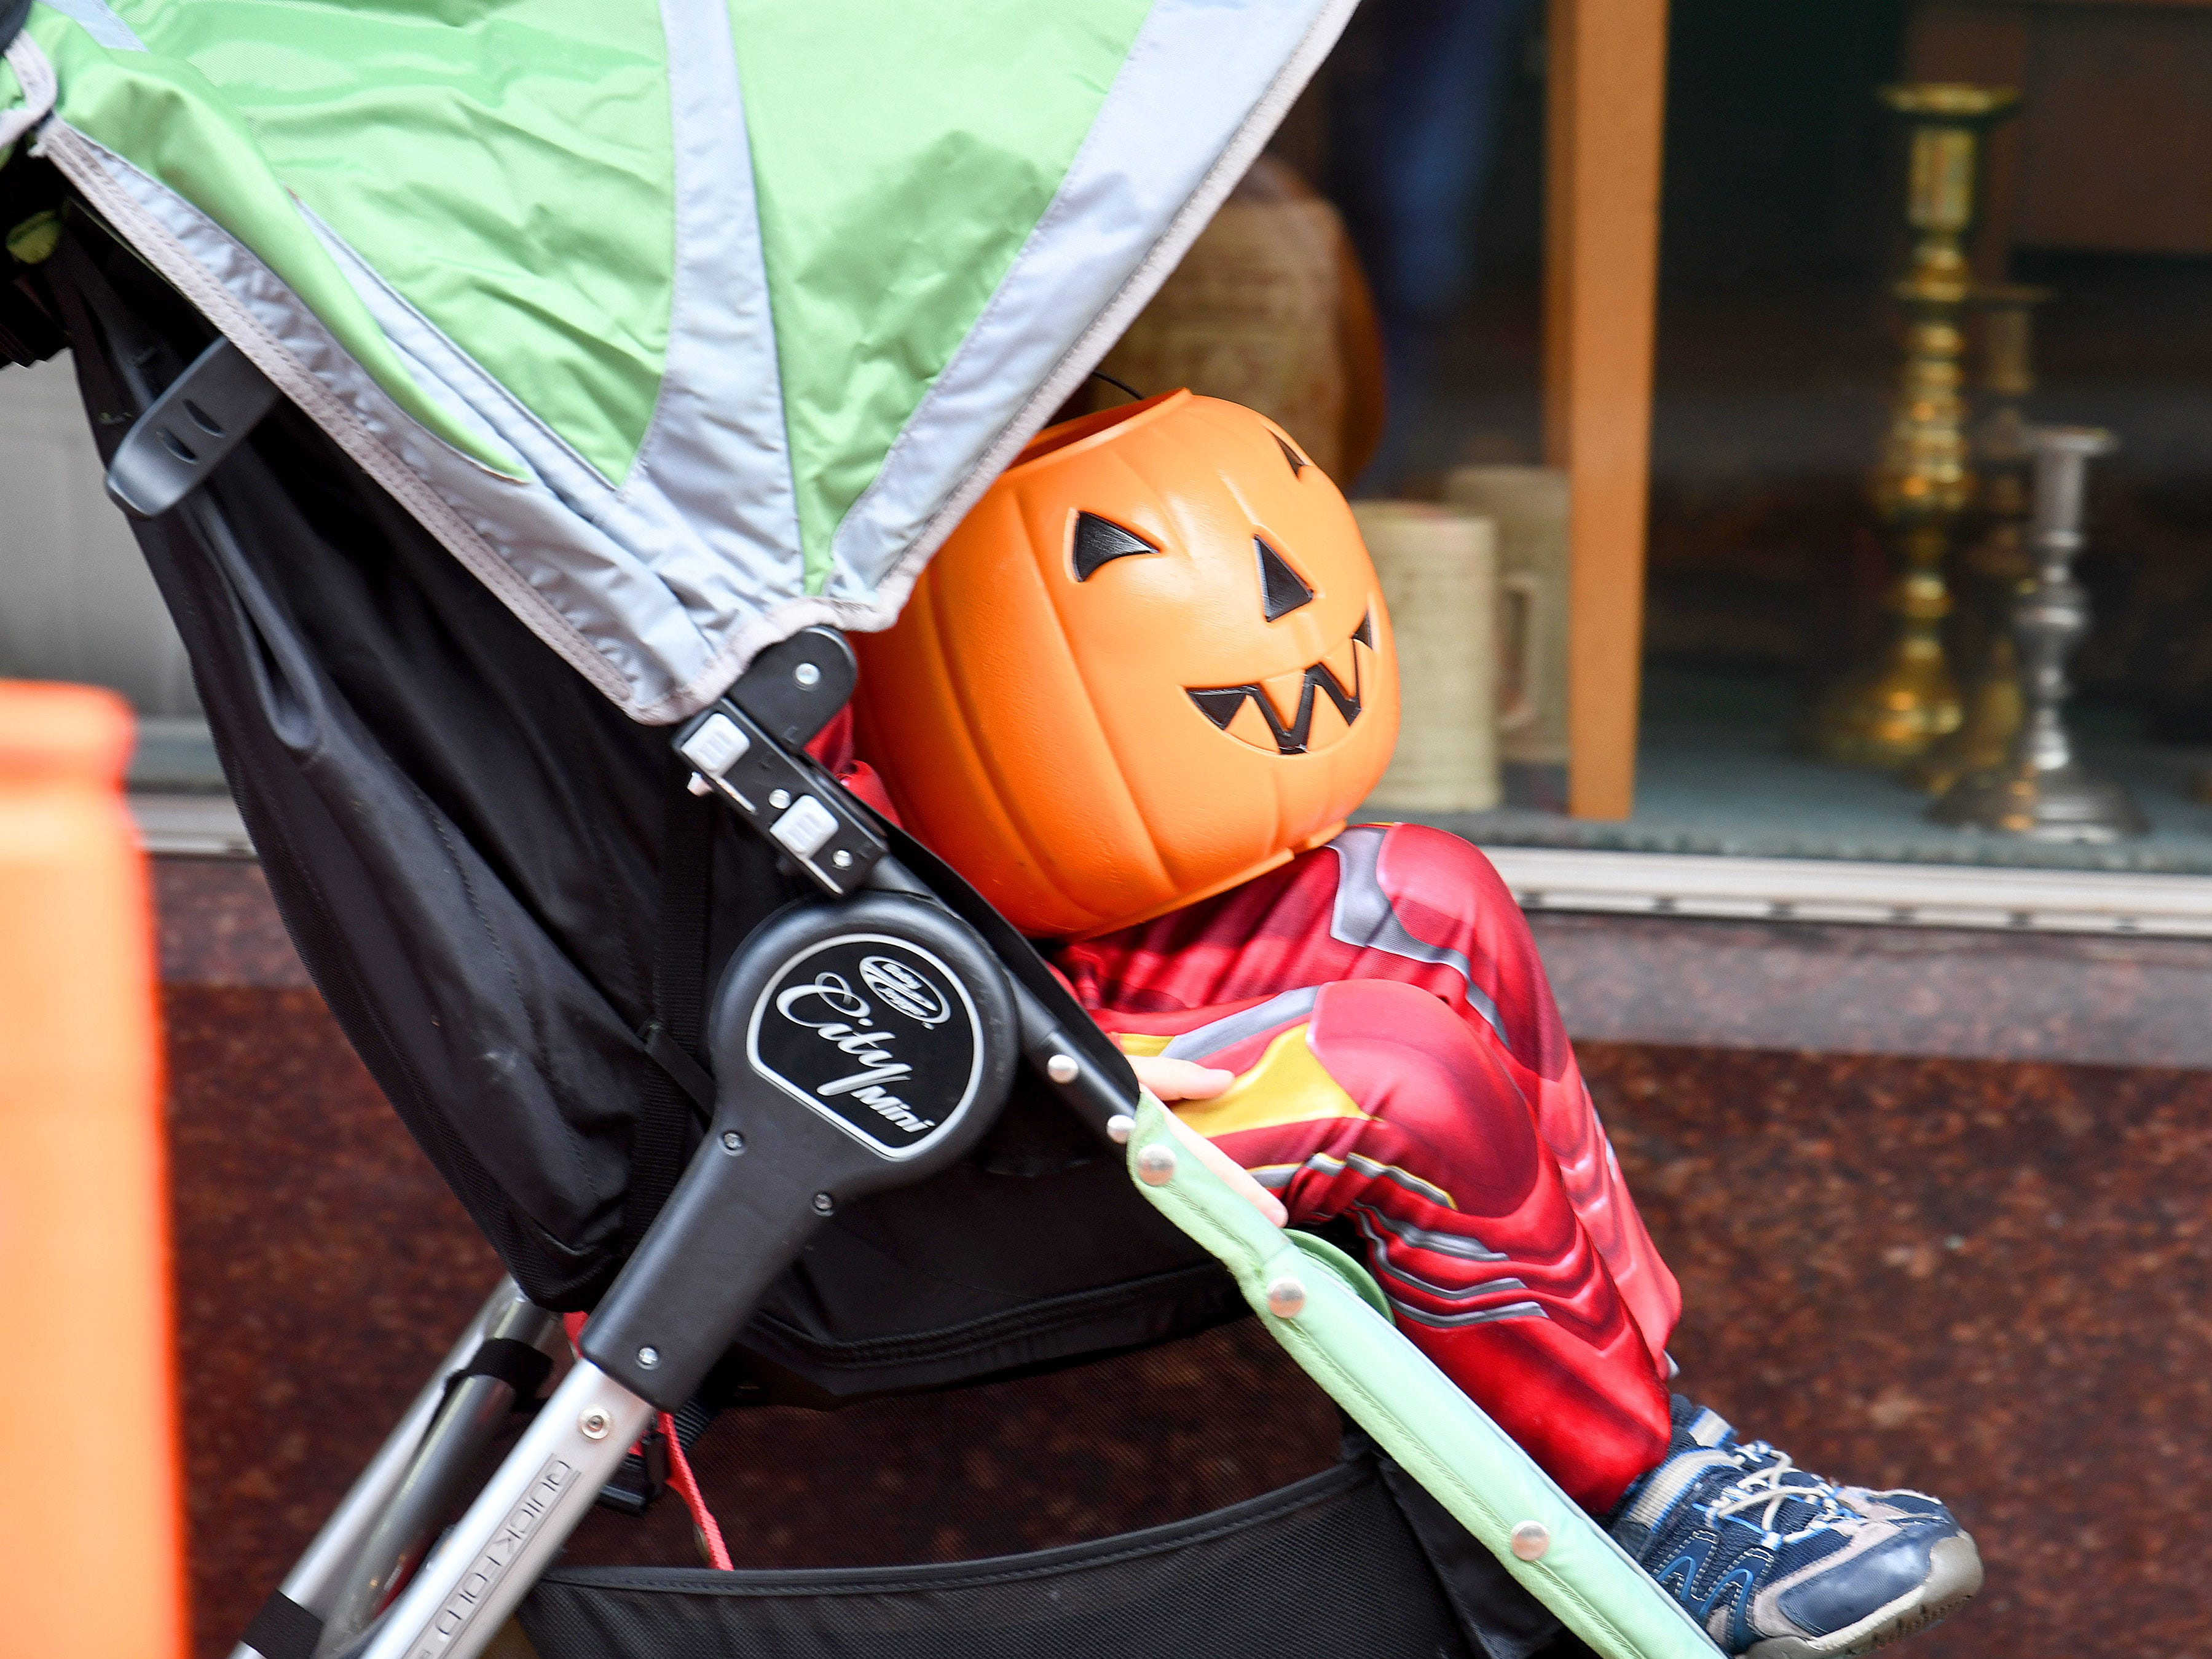 A candy bucket that looks like a Jack-o-Lantern appears to be a smiling face in a stroller during the annual the annual downtown trick-or-treating event in Staunton on Saturday, Oct. 27, 2018.